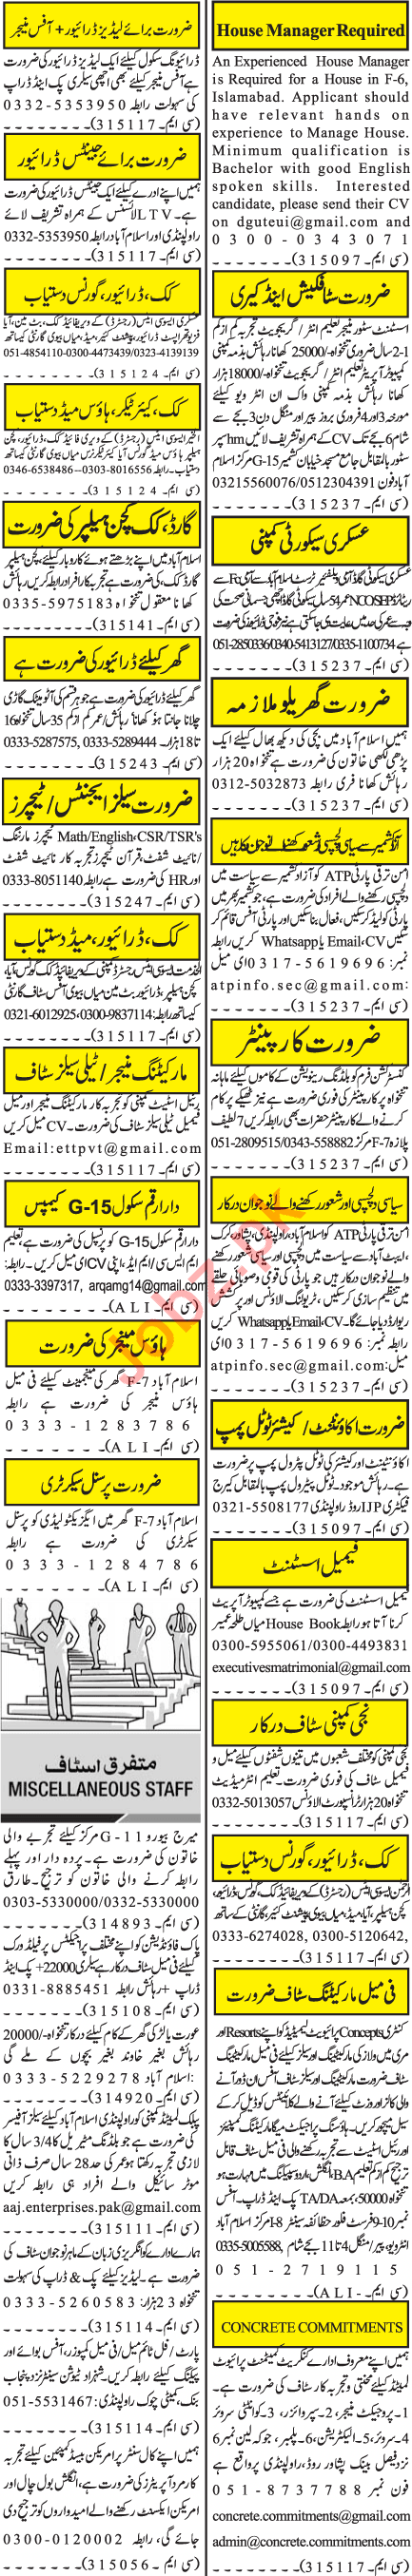 Jang Sunday Classified Ads 2nd Feb 2020 for General Staff